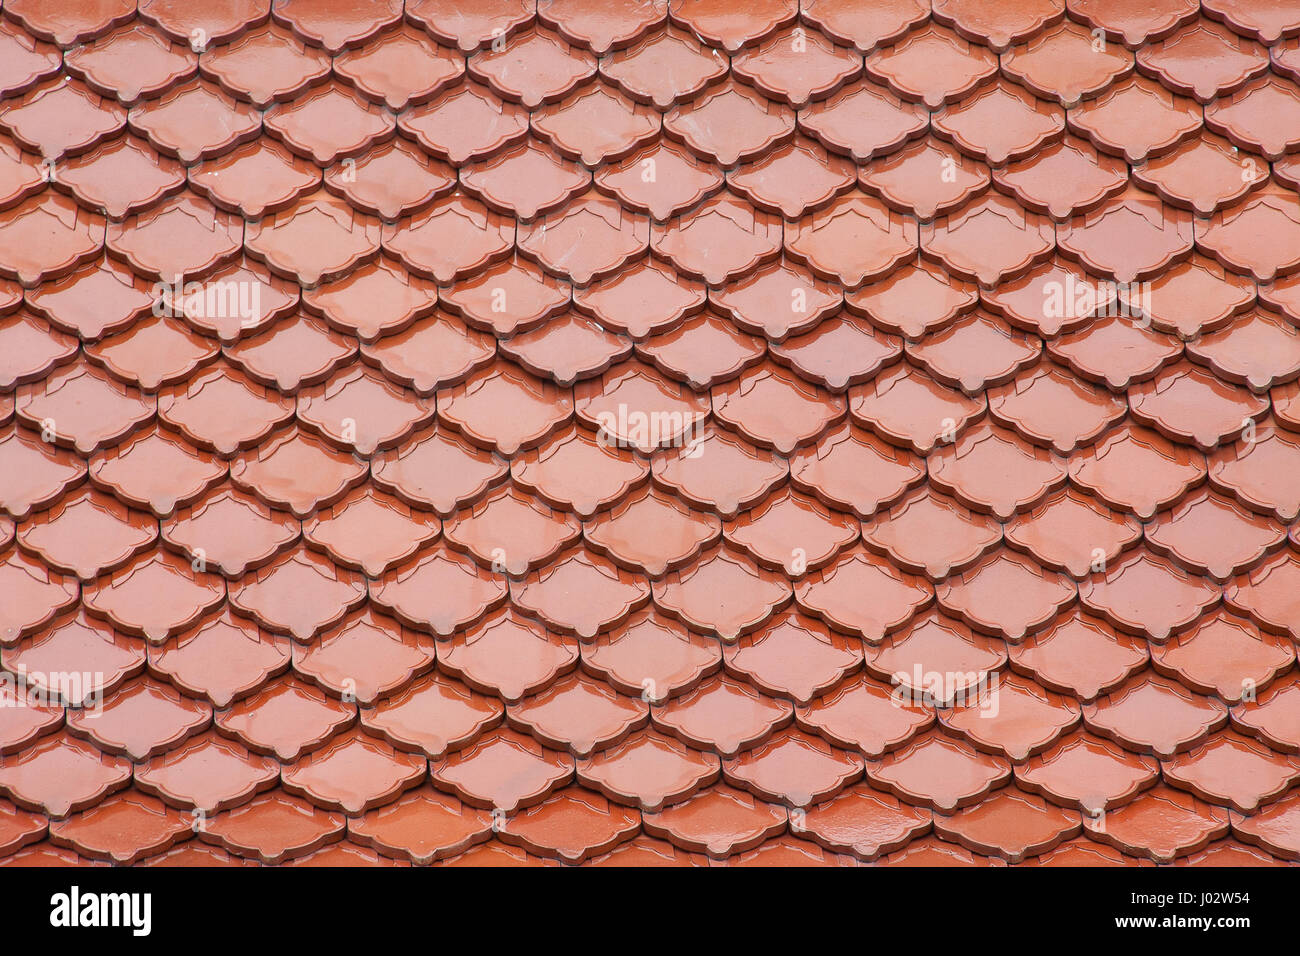 Roofing tile pattern roof tile pattern stock photo for Roof tile patterns